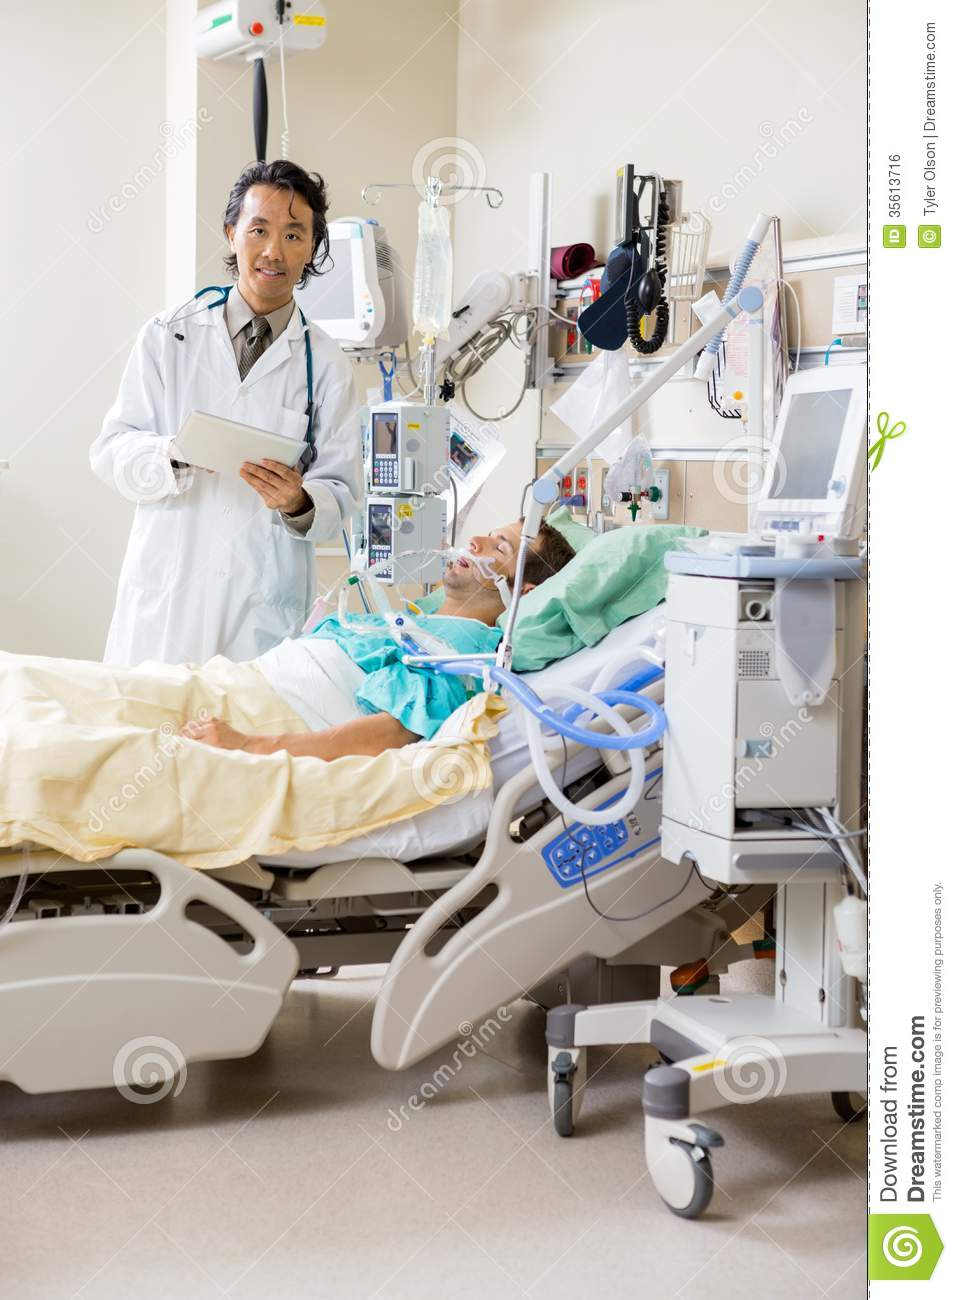 Doctor with Patients in Hospitals